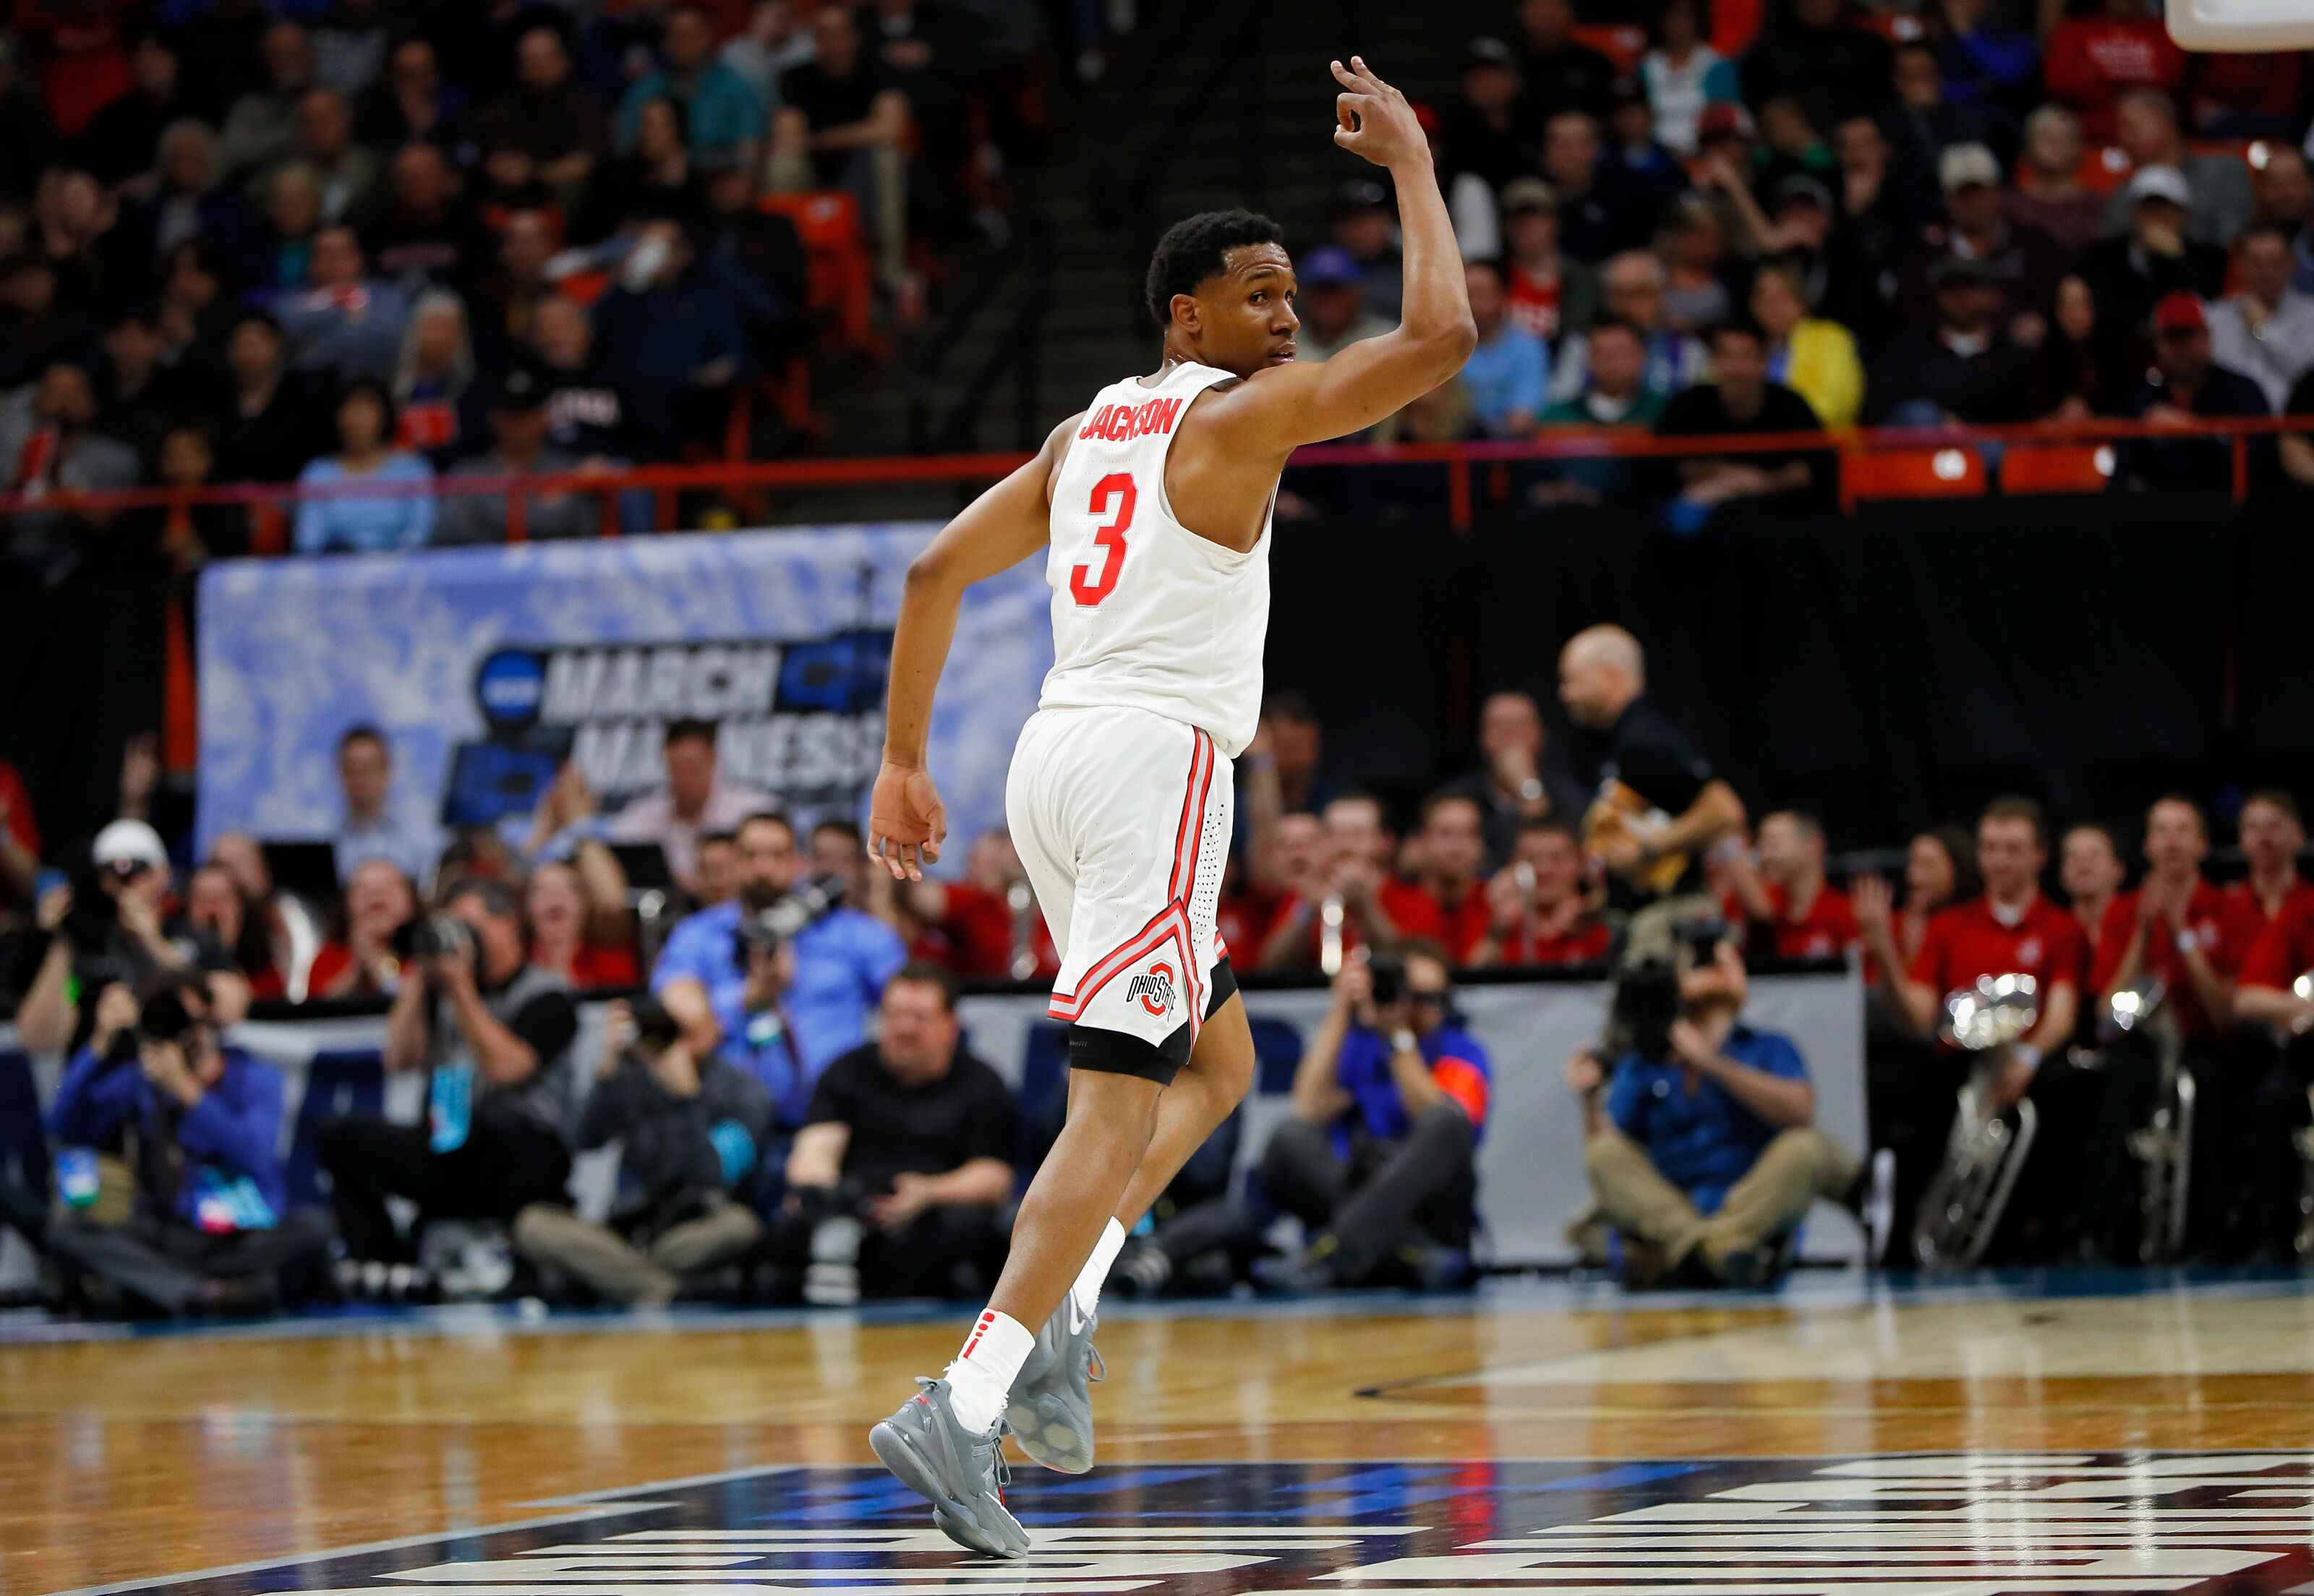 Ohio State Basketball: Can Buckeyes upset Houston in the Round of 32?